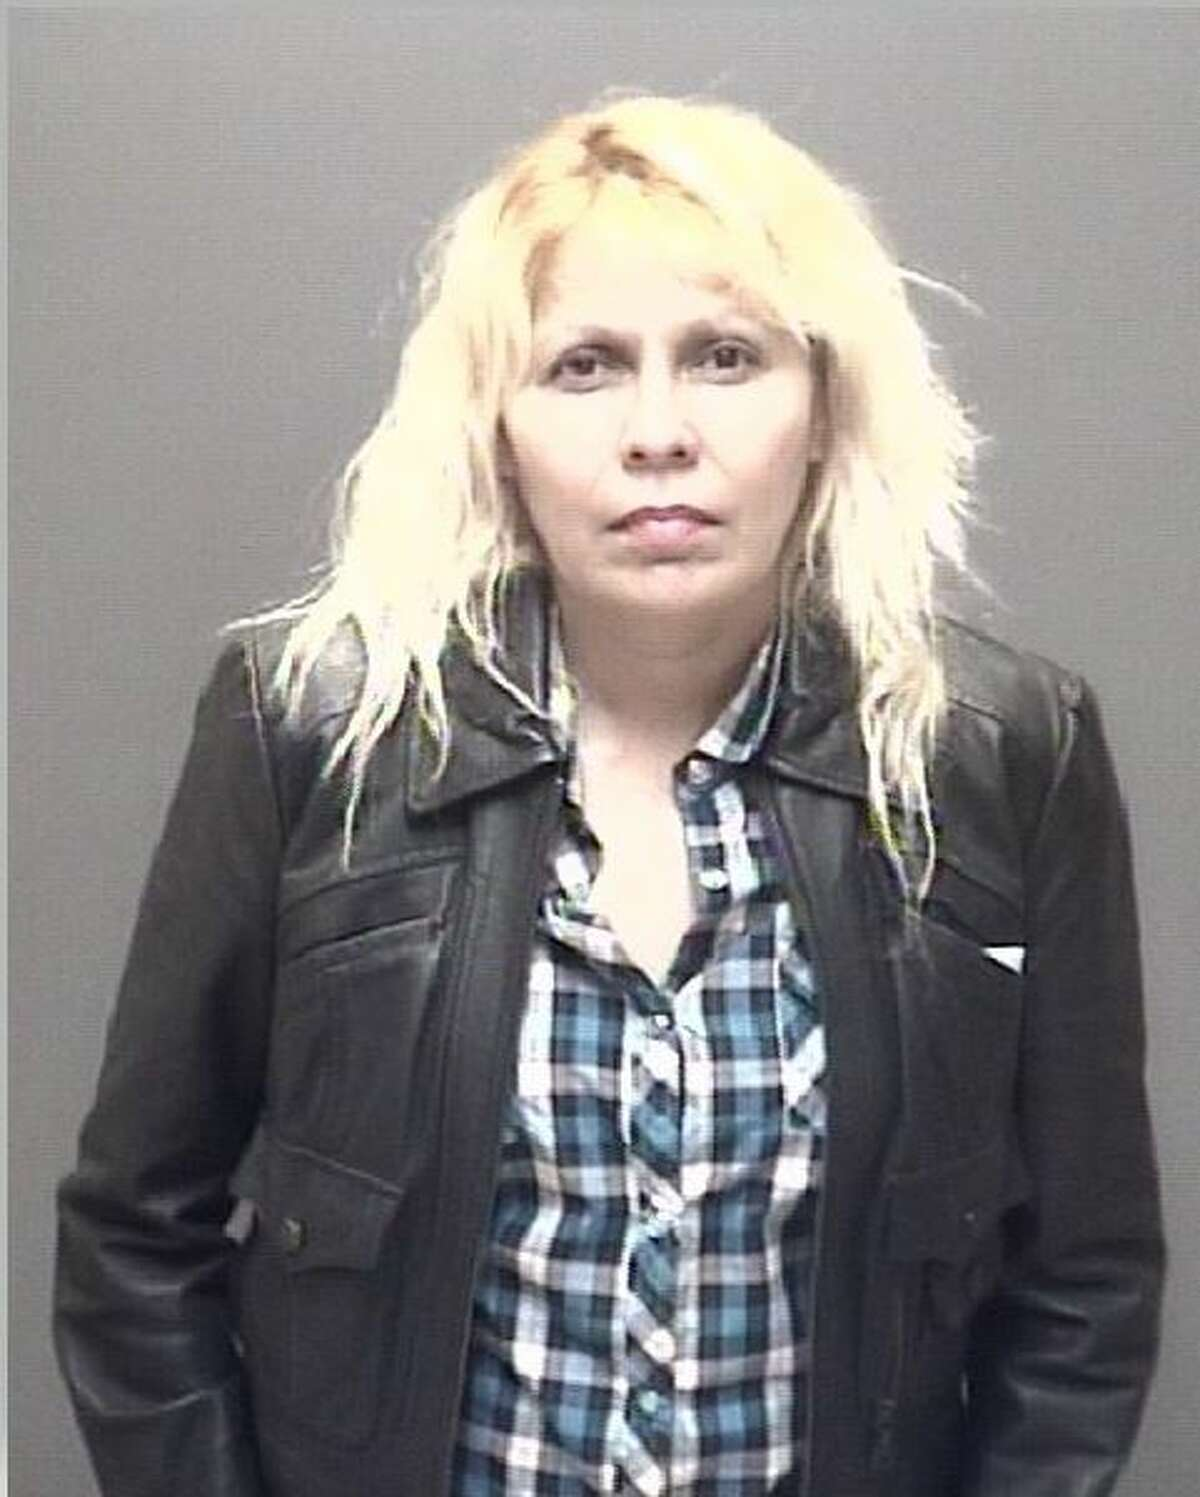 Irma Chavez was arrested on a third or more charge of DWI.